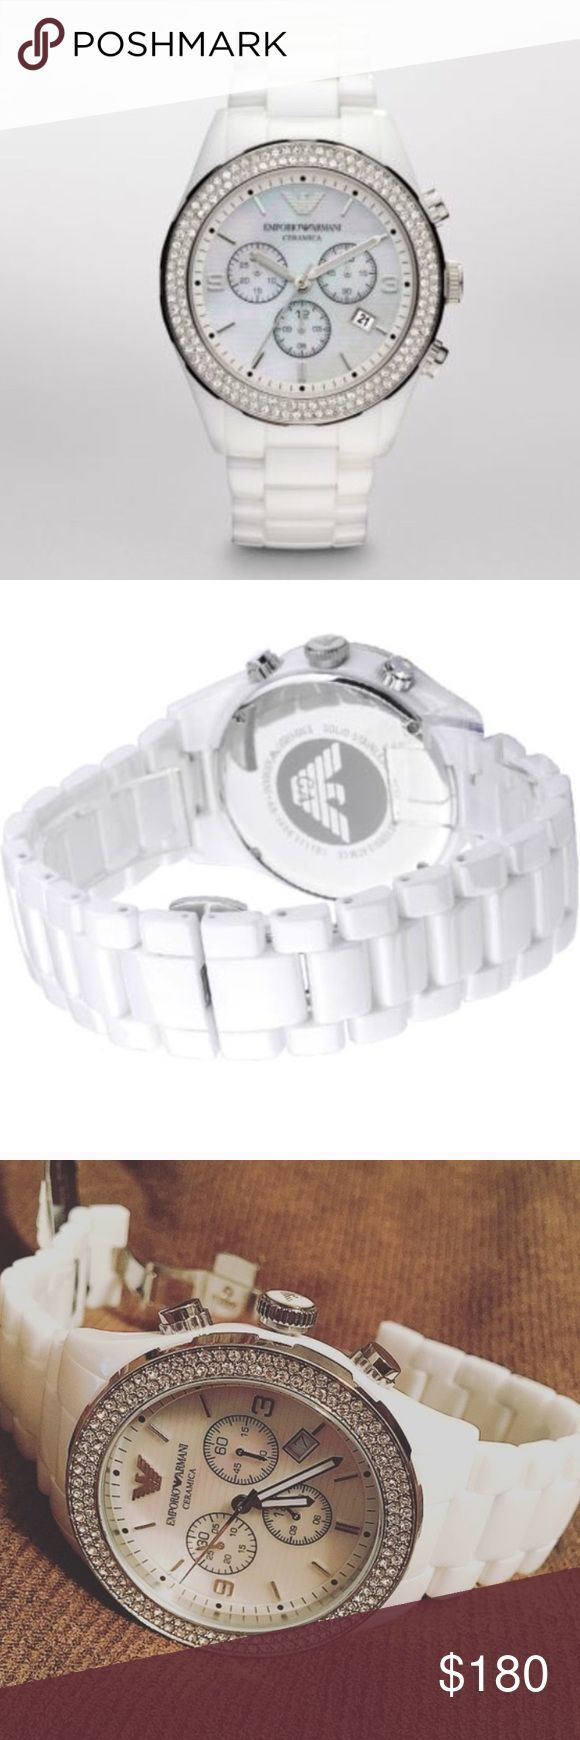 "White Ceramic Emporio Armani Watch Women's white ceramic Emporio Armani watch. Has two rows of Swarovski crystals around the bezel, mother of pearl face, and chronograph feature. Watch is NEW with defects. Never warn, new with tags! However, the chronograph (stopwatch function) resets to the ""10"" hand instead of ""12"" hand. Battery works, everything is in excellent condition! Original AR box not included. Authentic. No trades! Emporio Armani Accessories Watches"